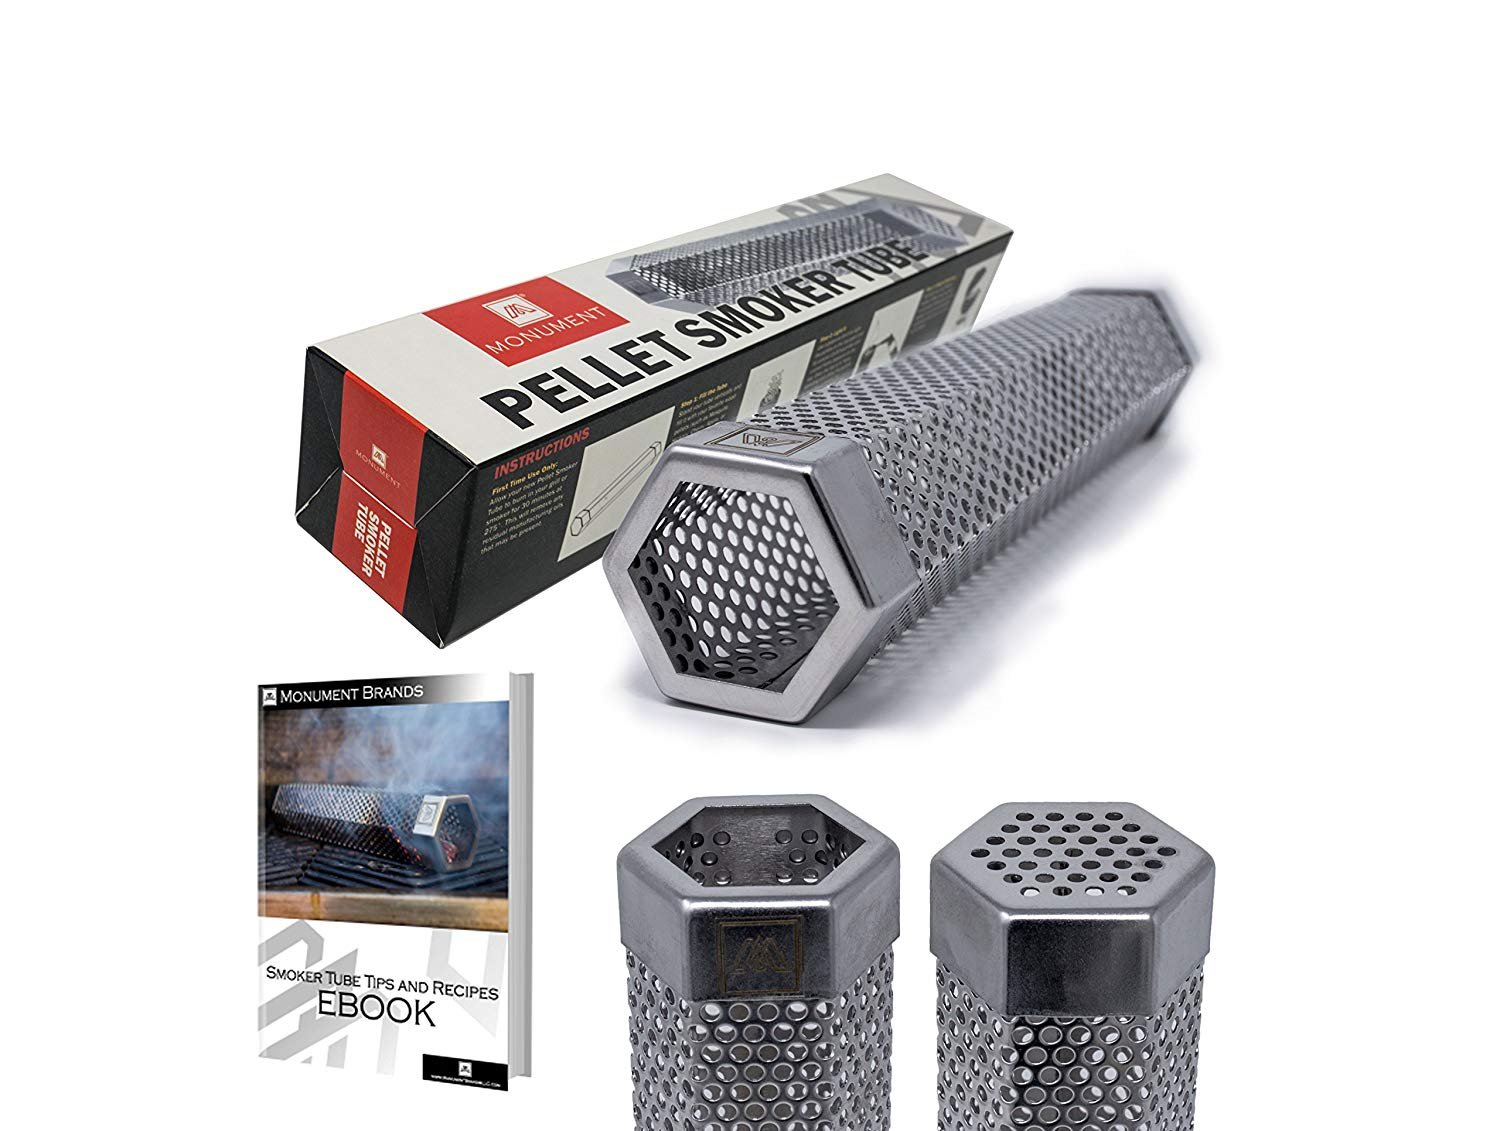 M EMBR Smoking 12'' Pellet Smoker Tube | E-Book with Recipes Included